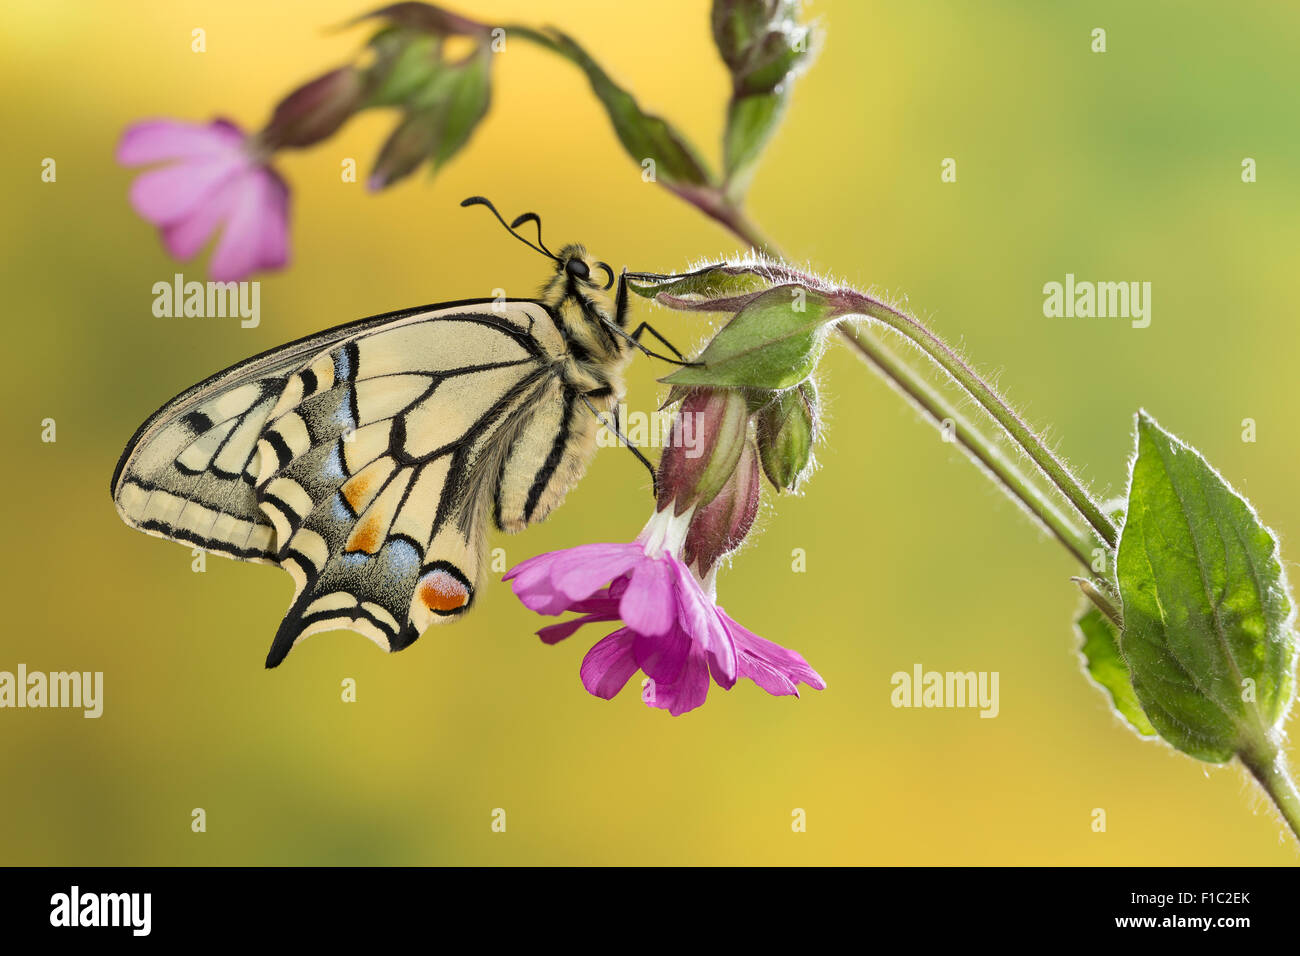 Old World swallowtail, common yellow swallowtail, swallow-tail, Schwalbenschwanz, Papilio machaon, Le Machaon, Grand - Stock Image